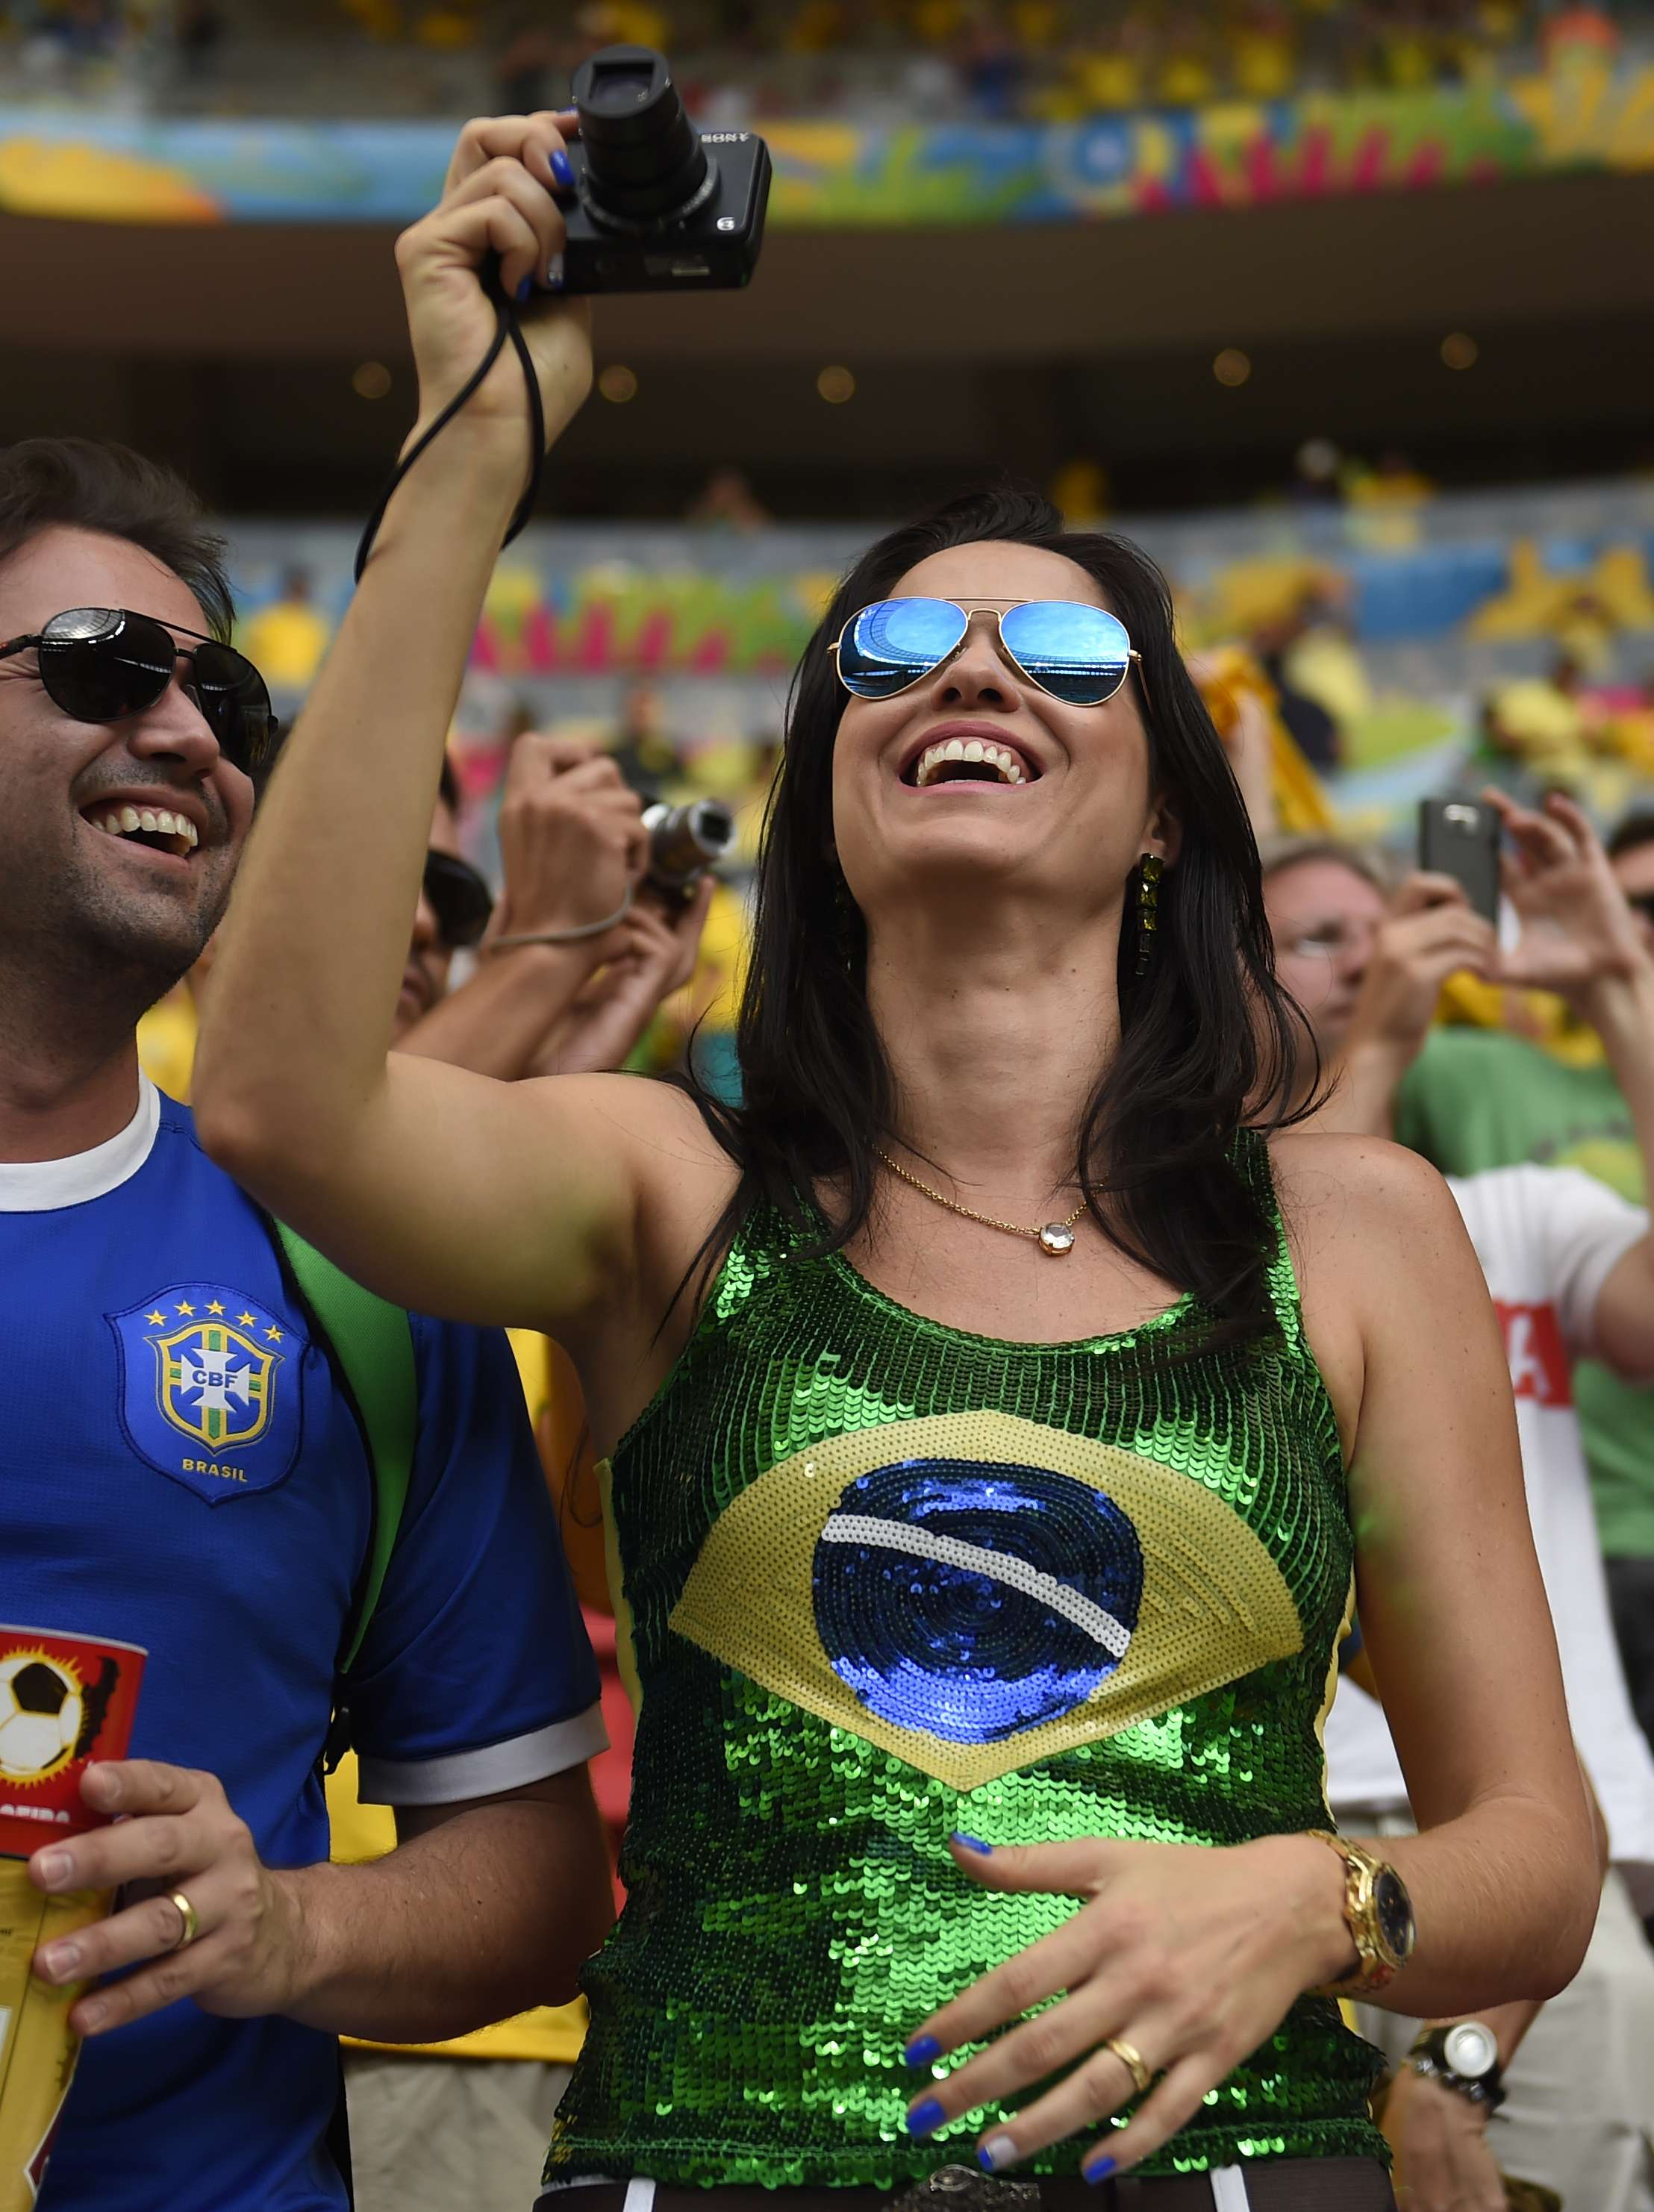 Brazil vs. Netherlands: Which had the hottest fans?